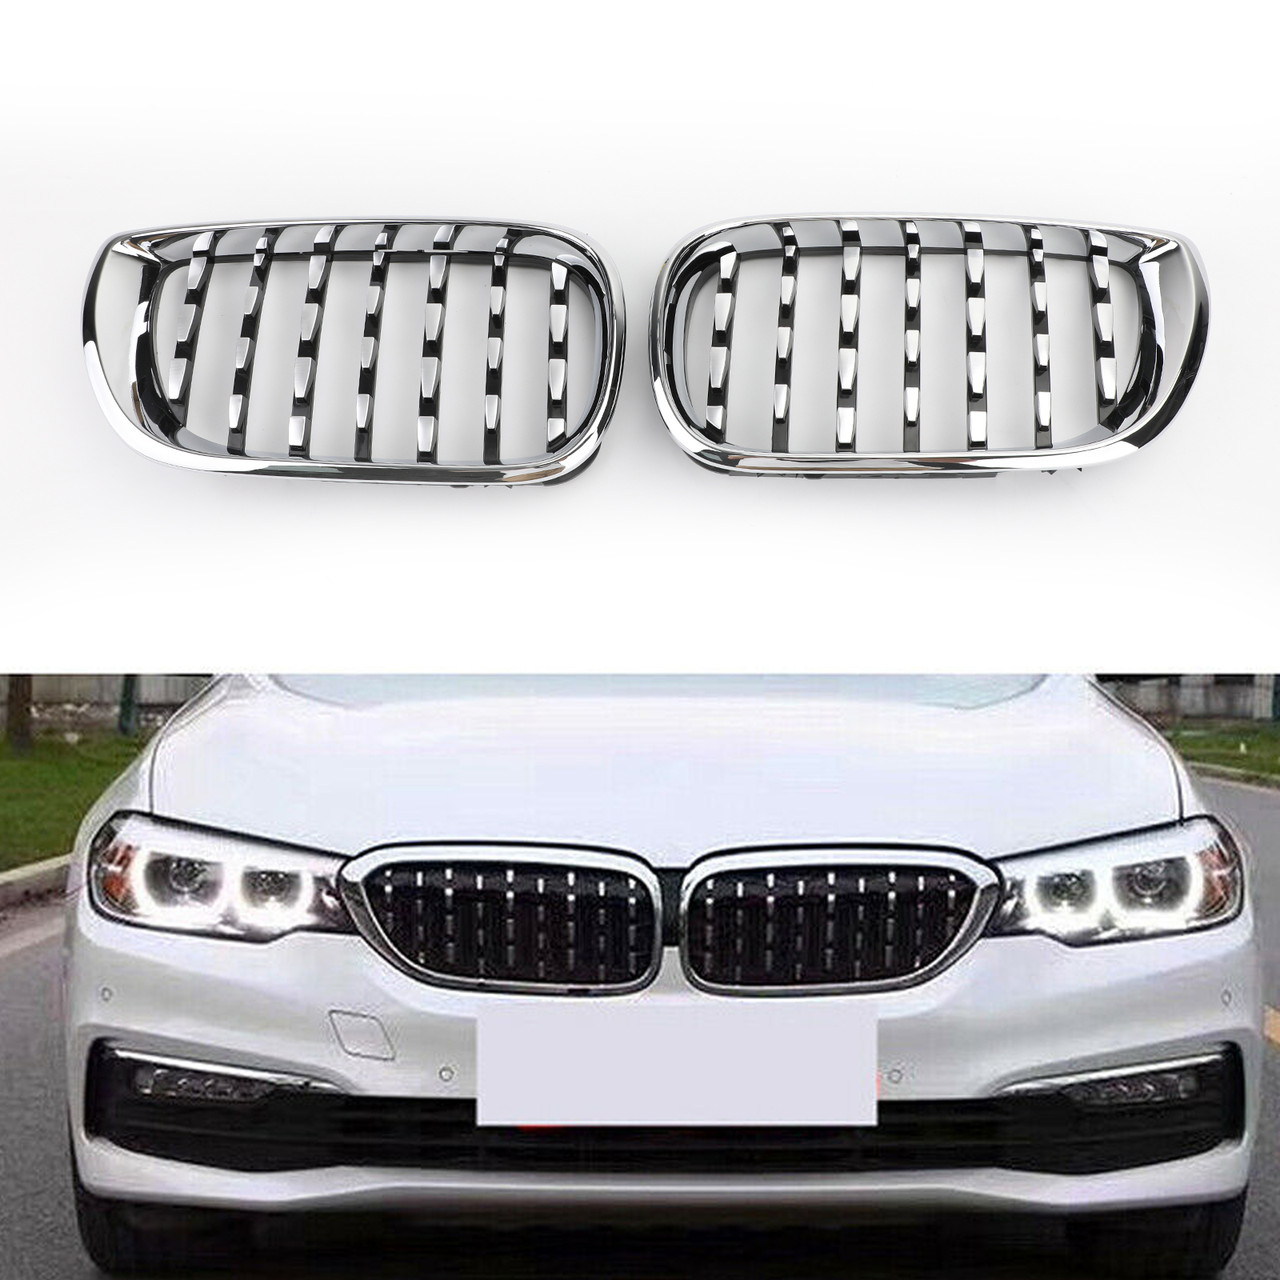 Car Tuning Styling For Bmw E46 02 05 Facelift 4dr Touring Front Grill Grille Dual Line Gloss Black Vehicle Parts Accessories Visitestartit Com